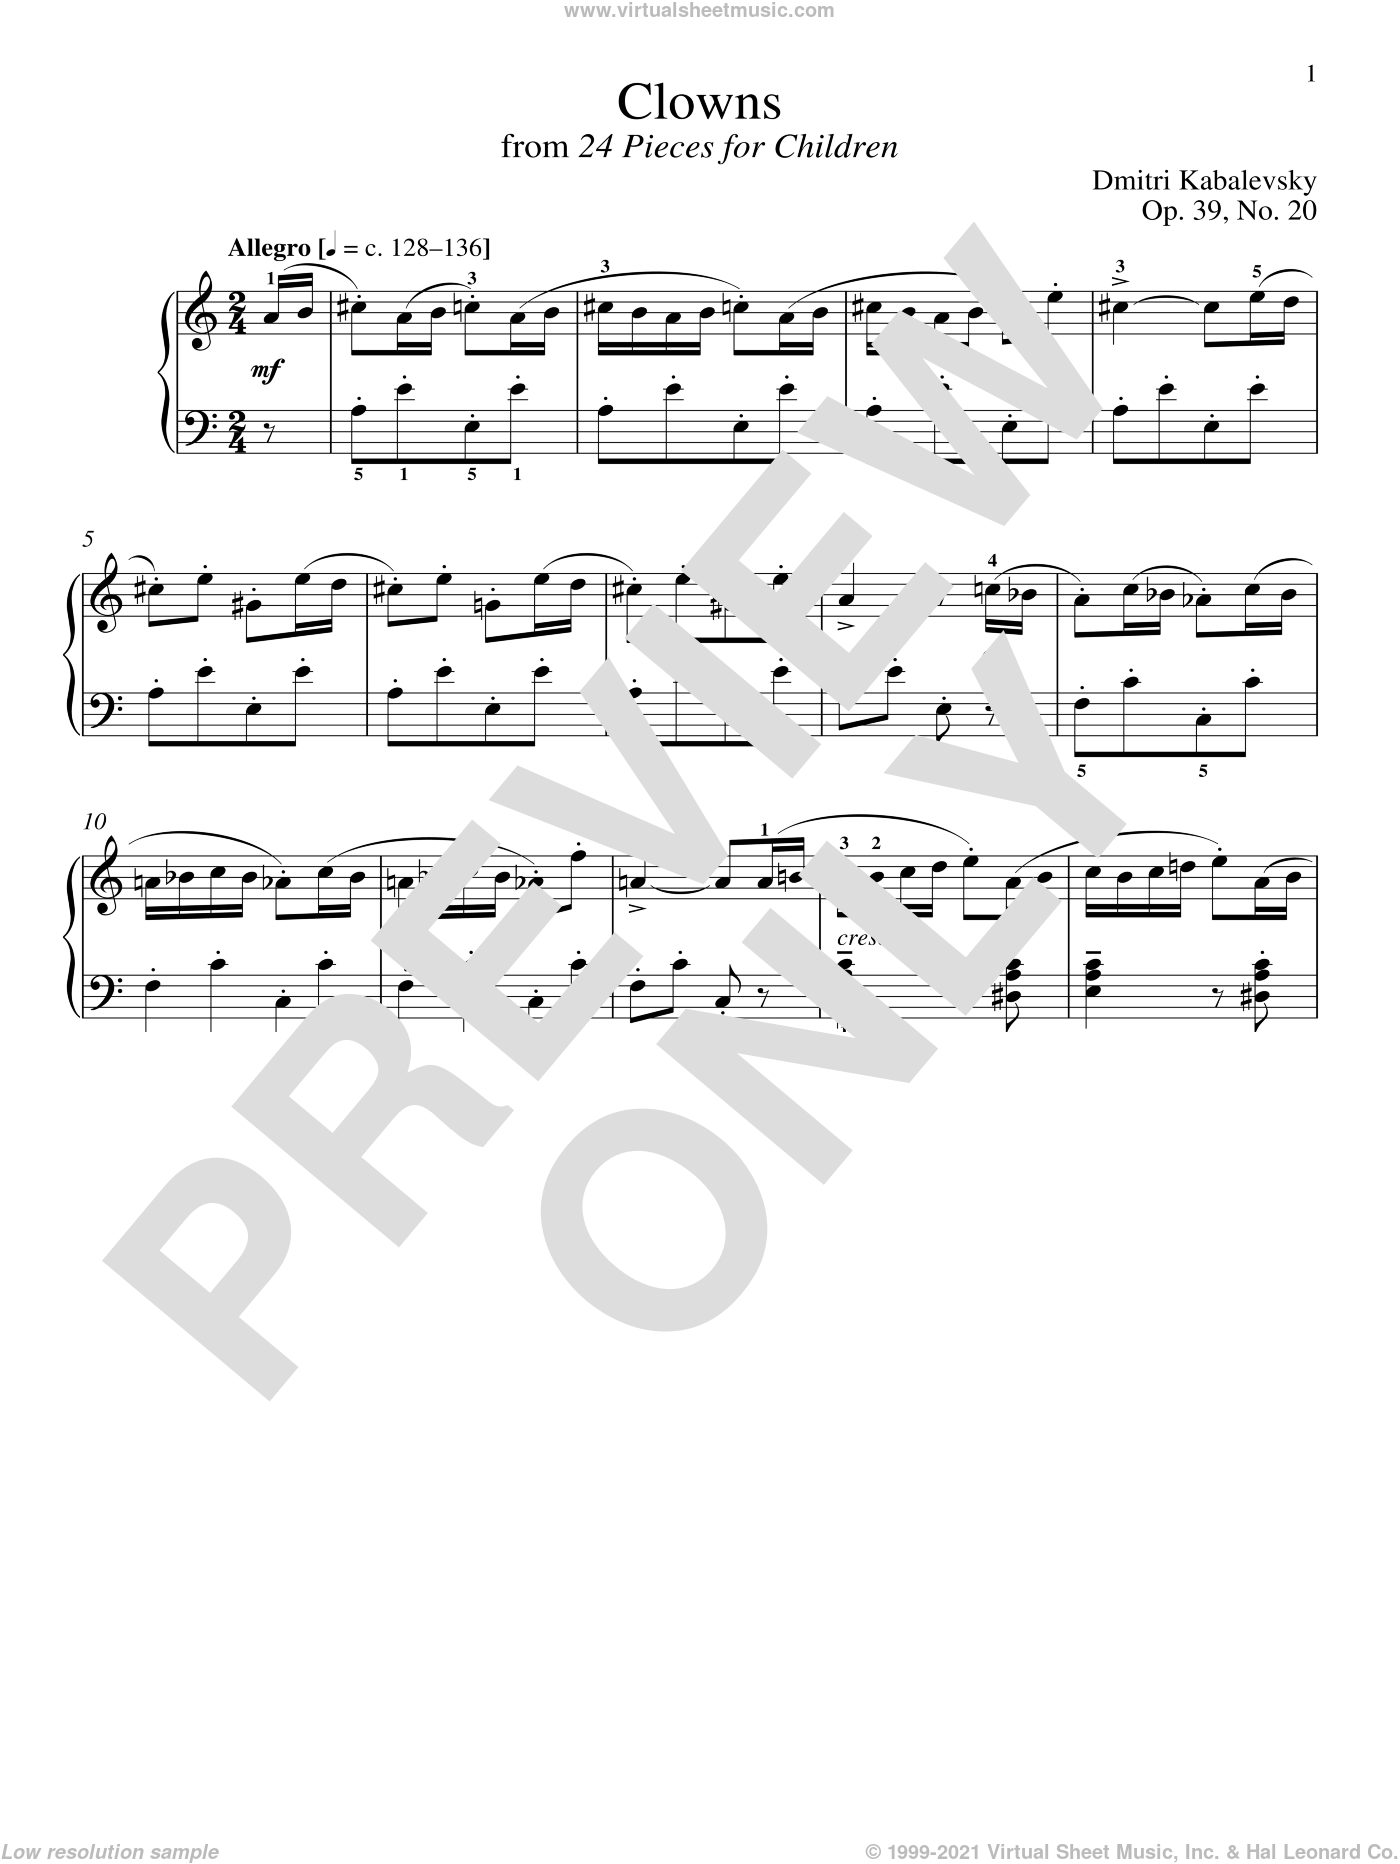 Clowns, Op. 39, No. 20 sheet music for piano solo by Dmitri Kabalevsky and Richard Walters, classical score, intermediate skill level